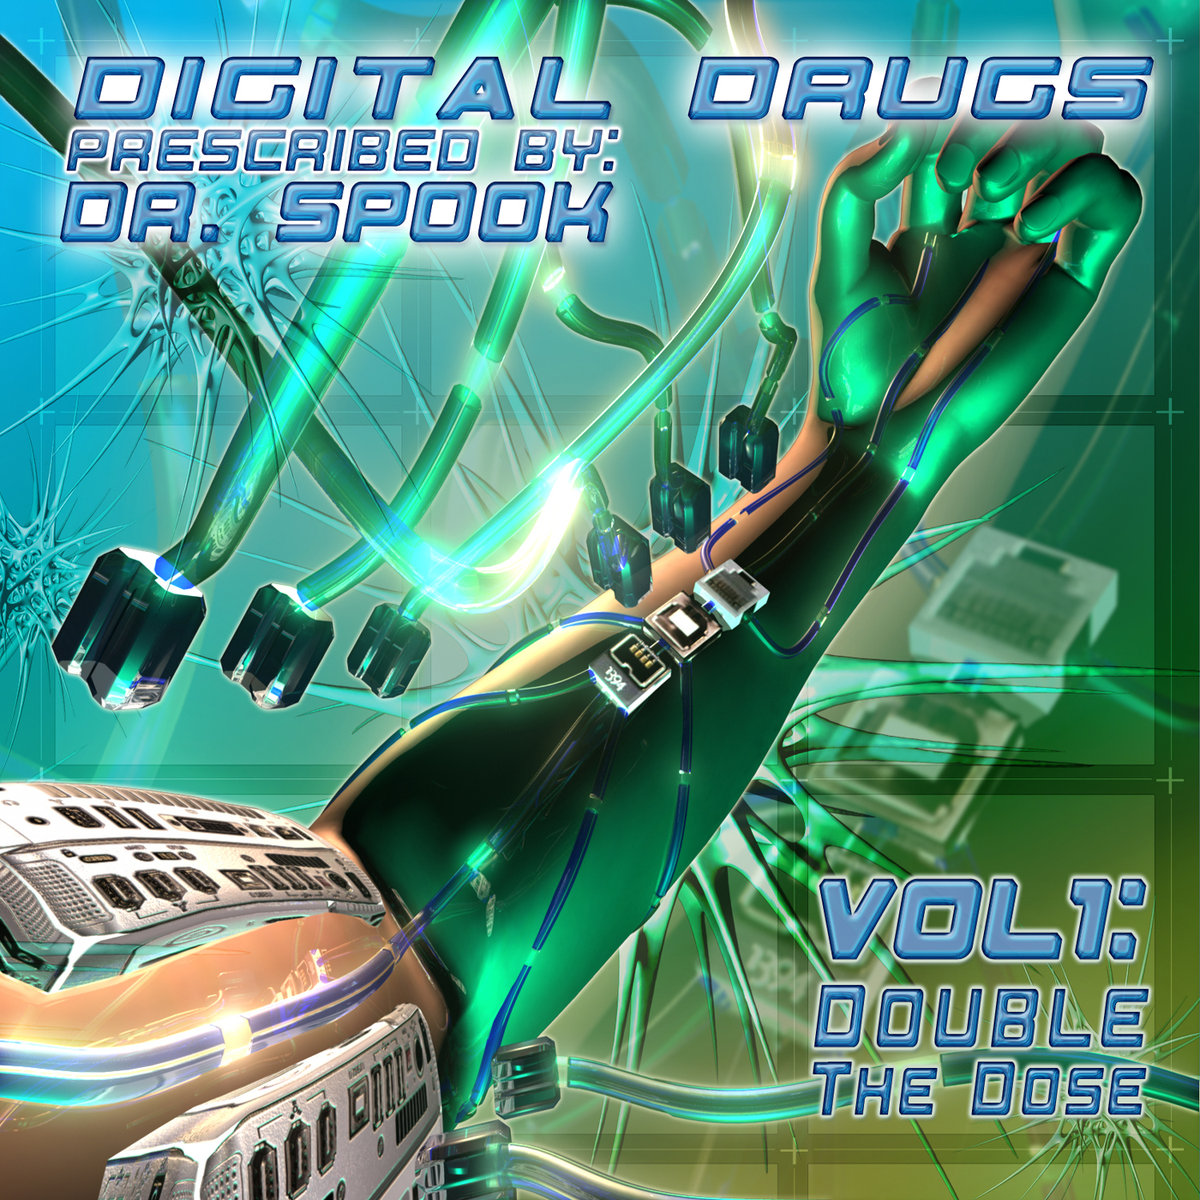 Total Sickness vs. Tracka - Addicted Drugs @ 'Various Artists - Digital Drugs Vol.1: Double the Dose (Prescribed by Dr. Spook)' album (electronic, goa)